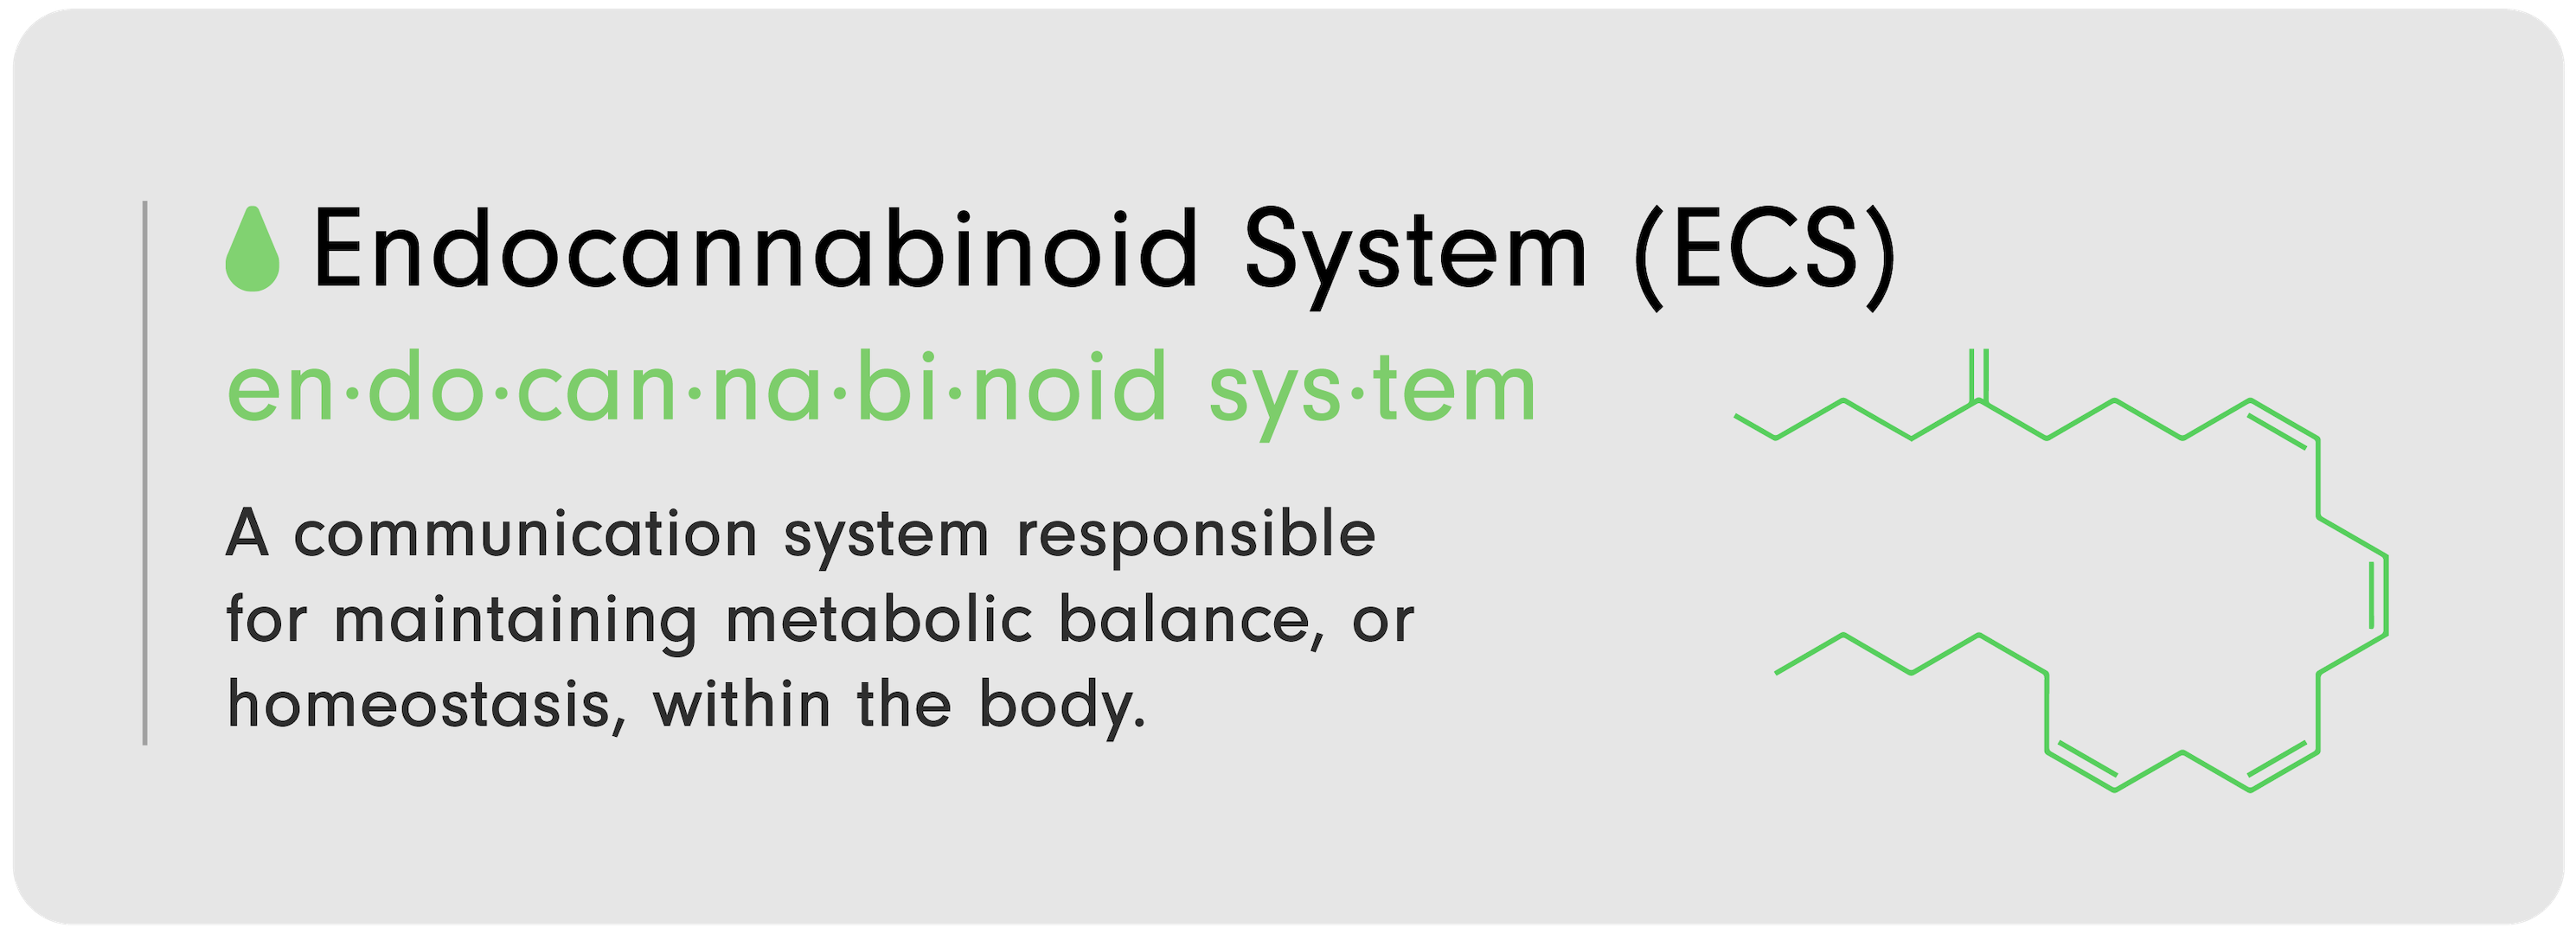 """C-D 101 Infographic by LEVO that reads, """"Endocannabinoid System (ECS): A communication system responsible for maintaining metabolic balance, or homeostasis, within the body."""""""